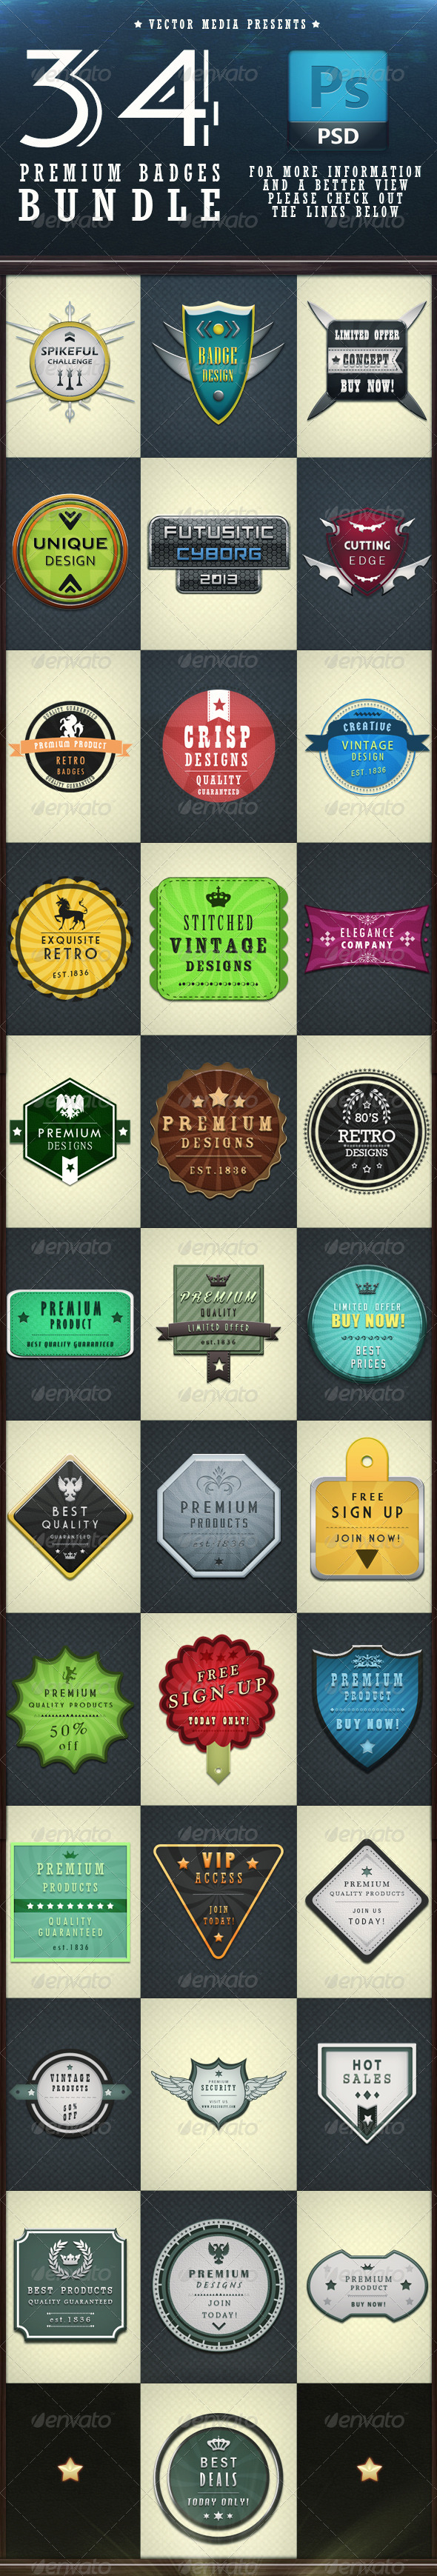 34 Premium Badges - Bundle - Badges & Stickers Web Elements